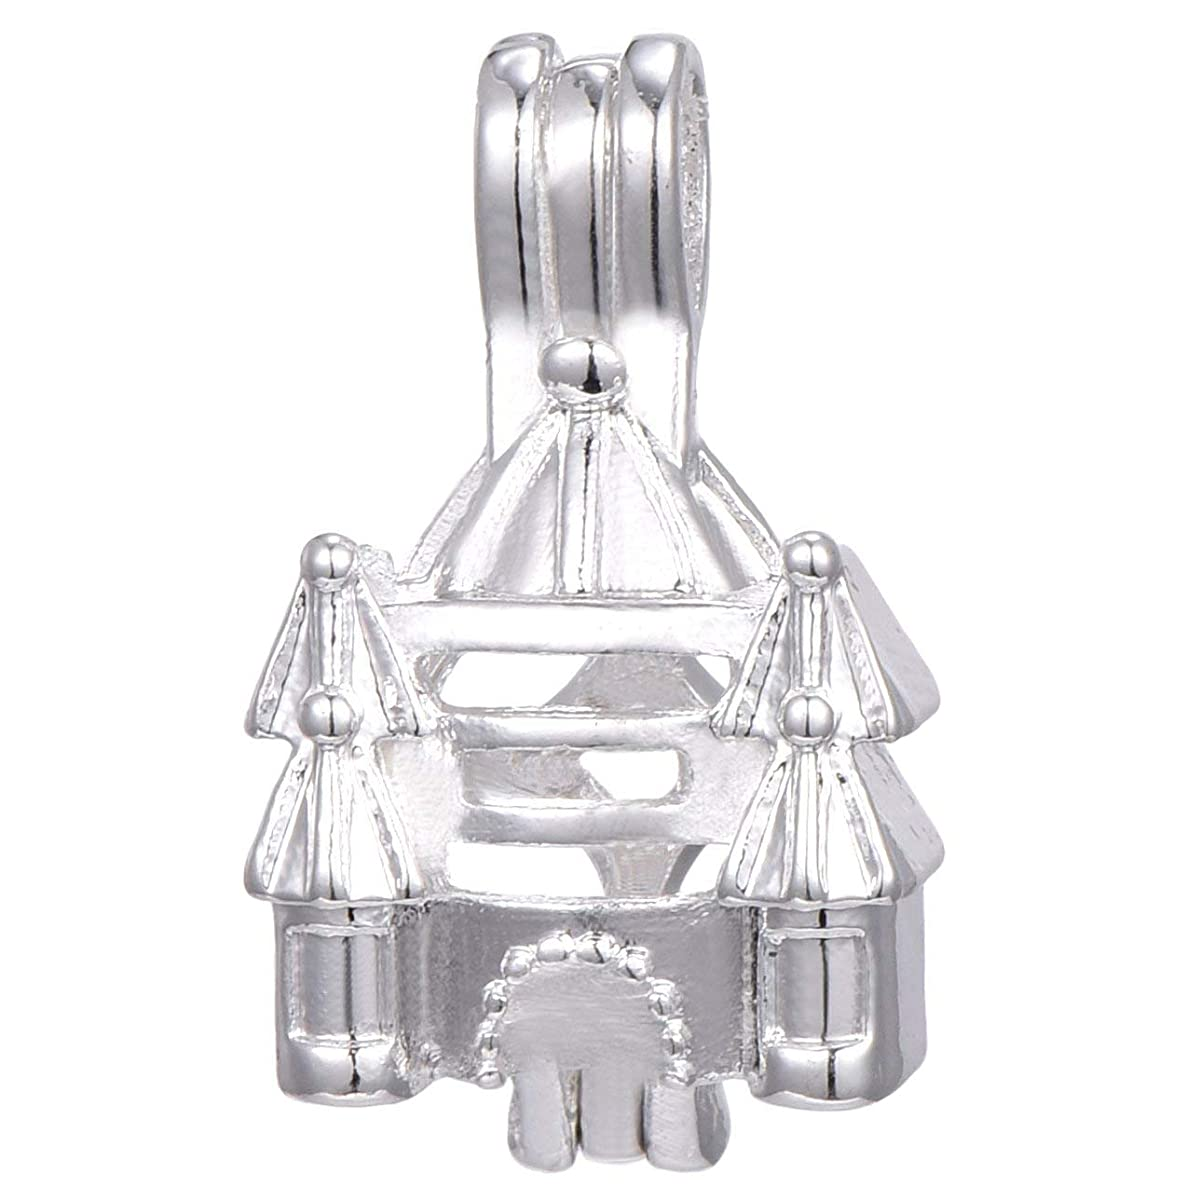 10pcs Castle Silver Plate Bead Cage Perfume Essential Oils Diffusing Locket Pendant Charms (B036)